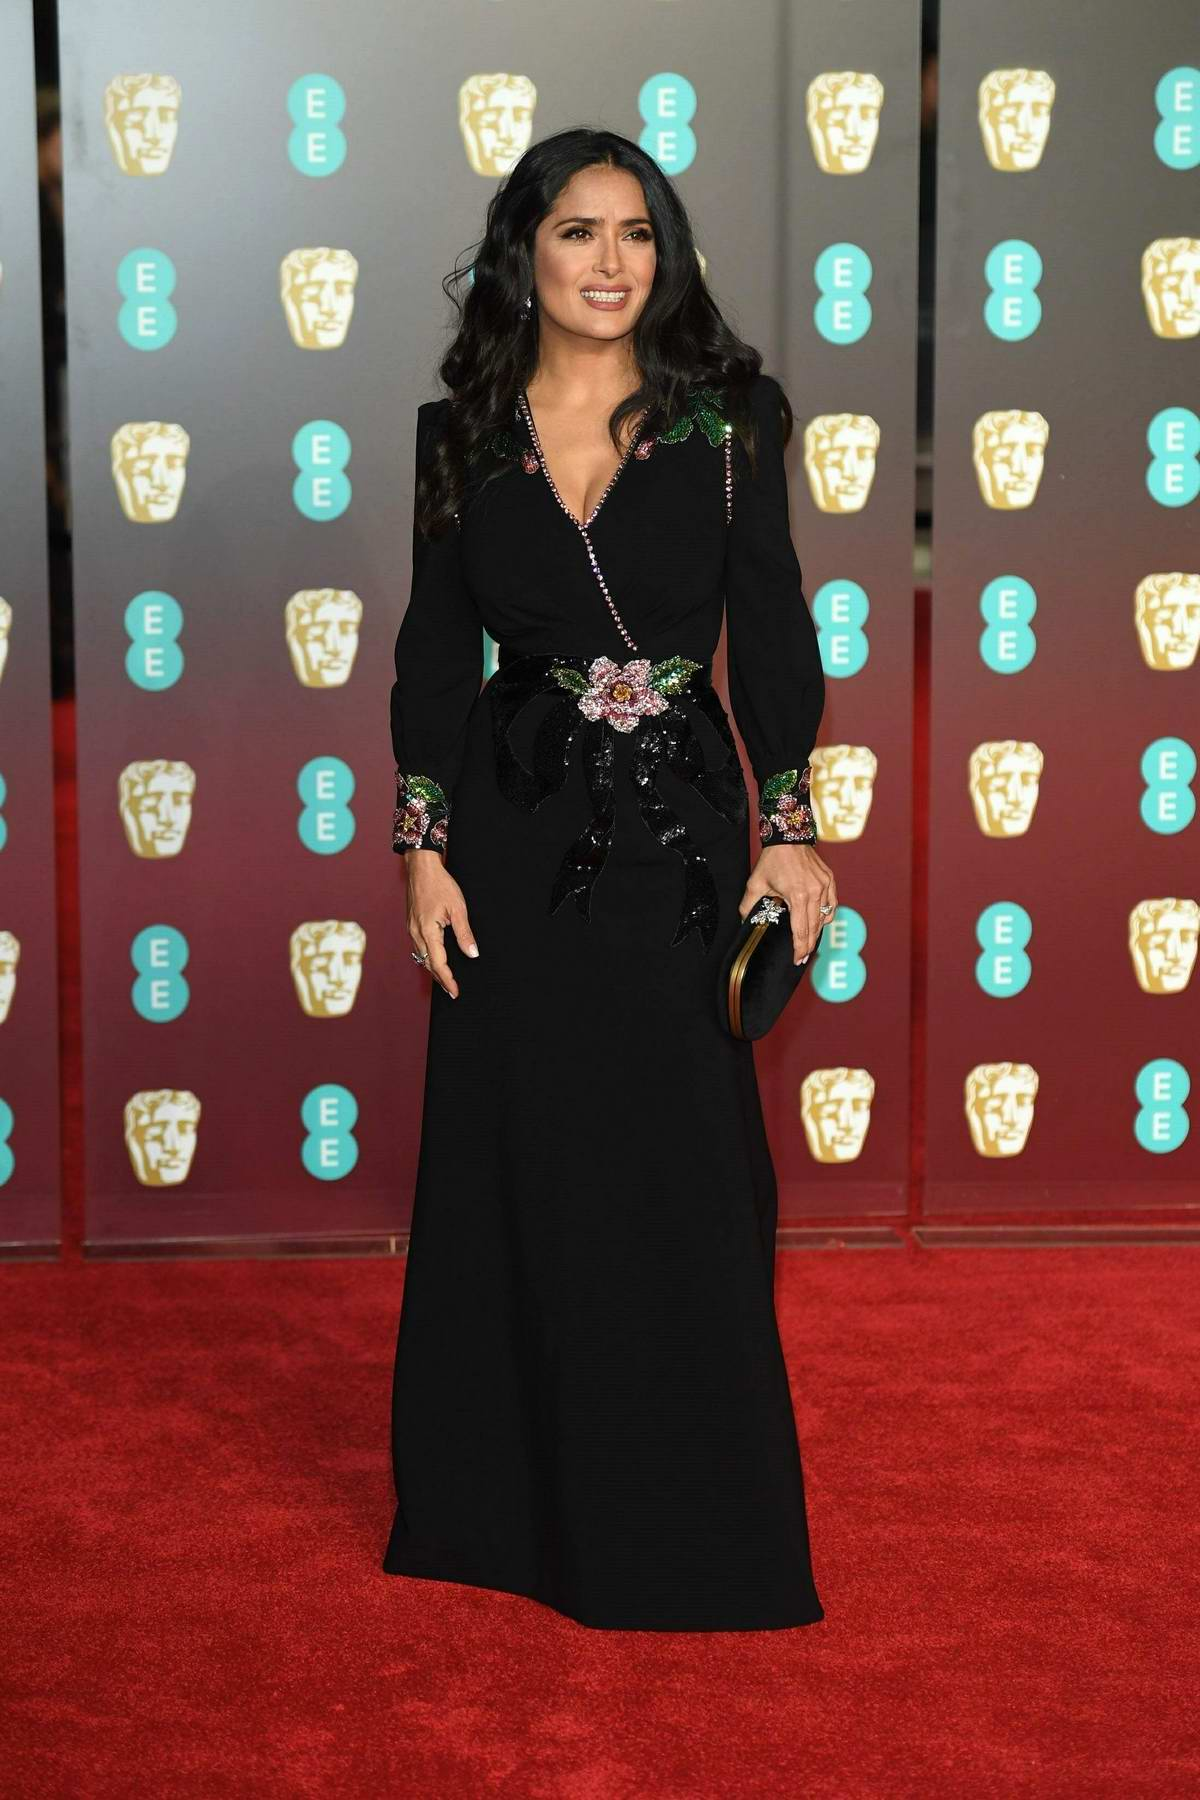 Salma Hayek attends 71st British Academy Film Awards at Royal Albert Hall in London